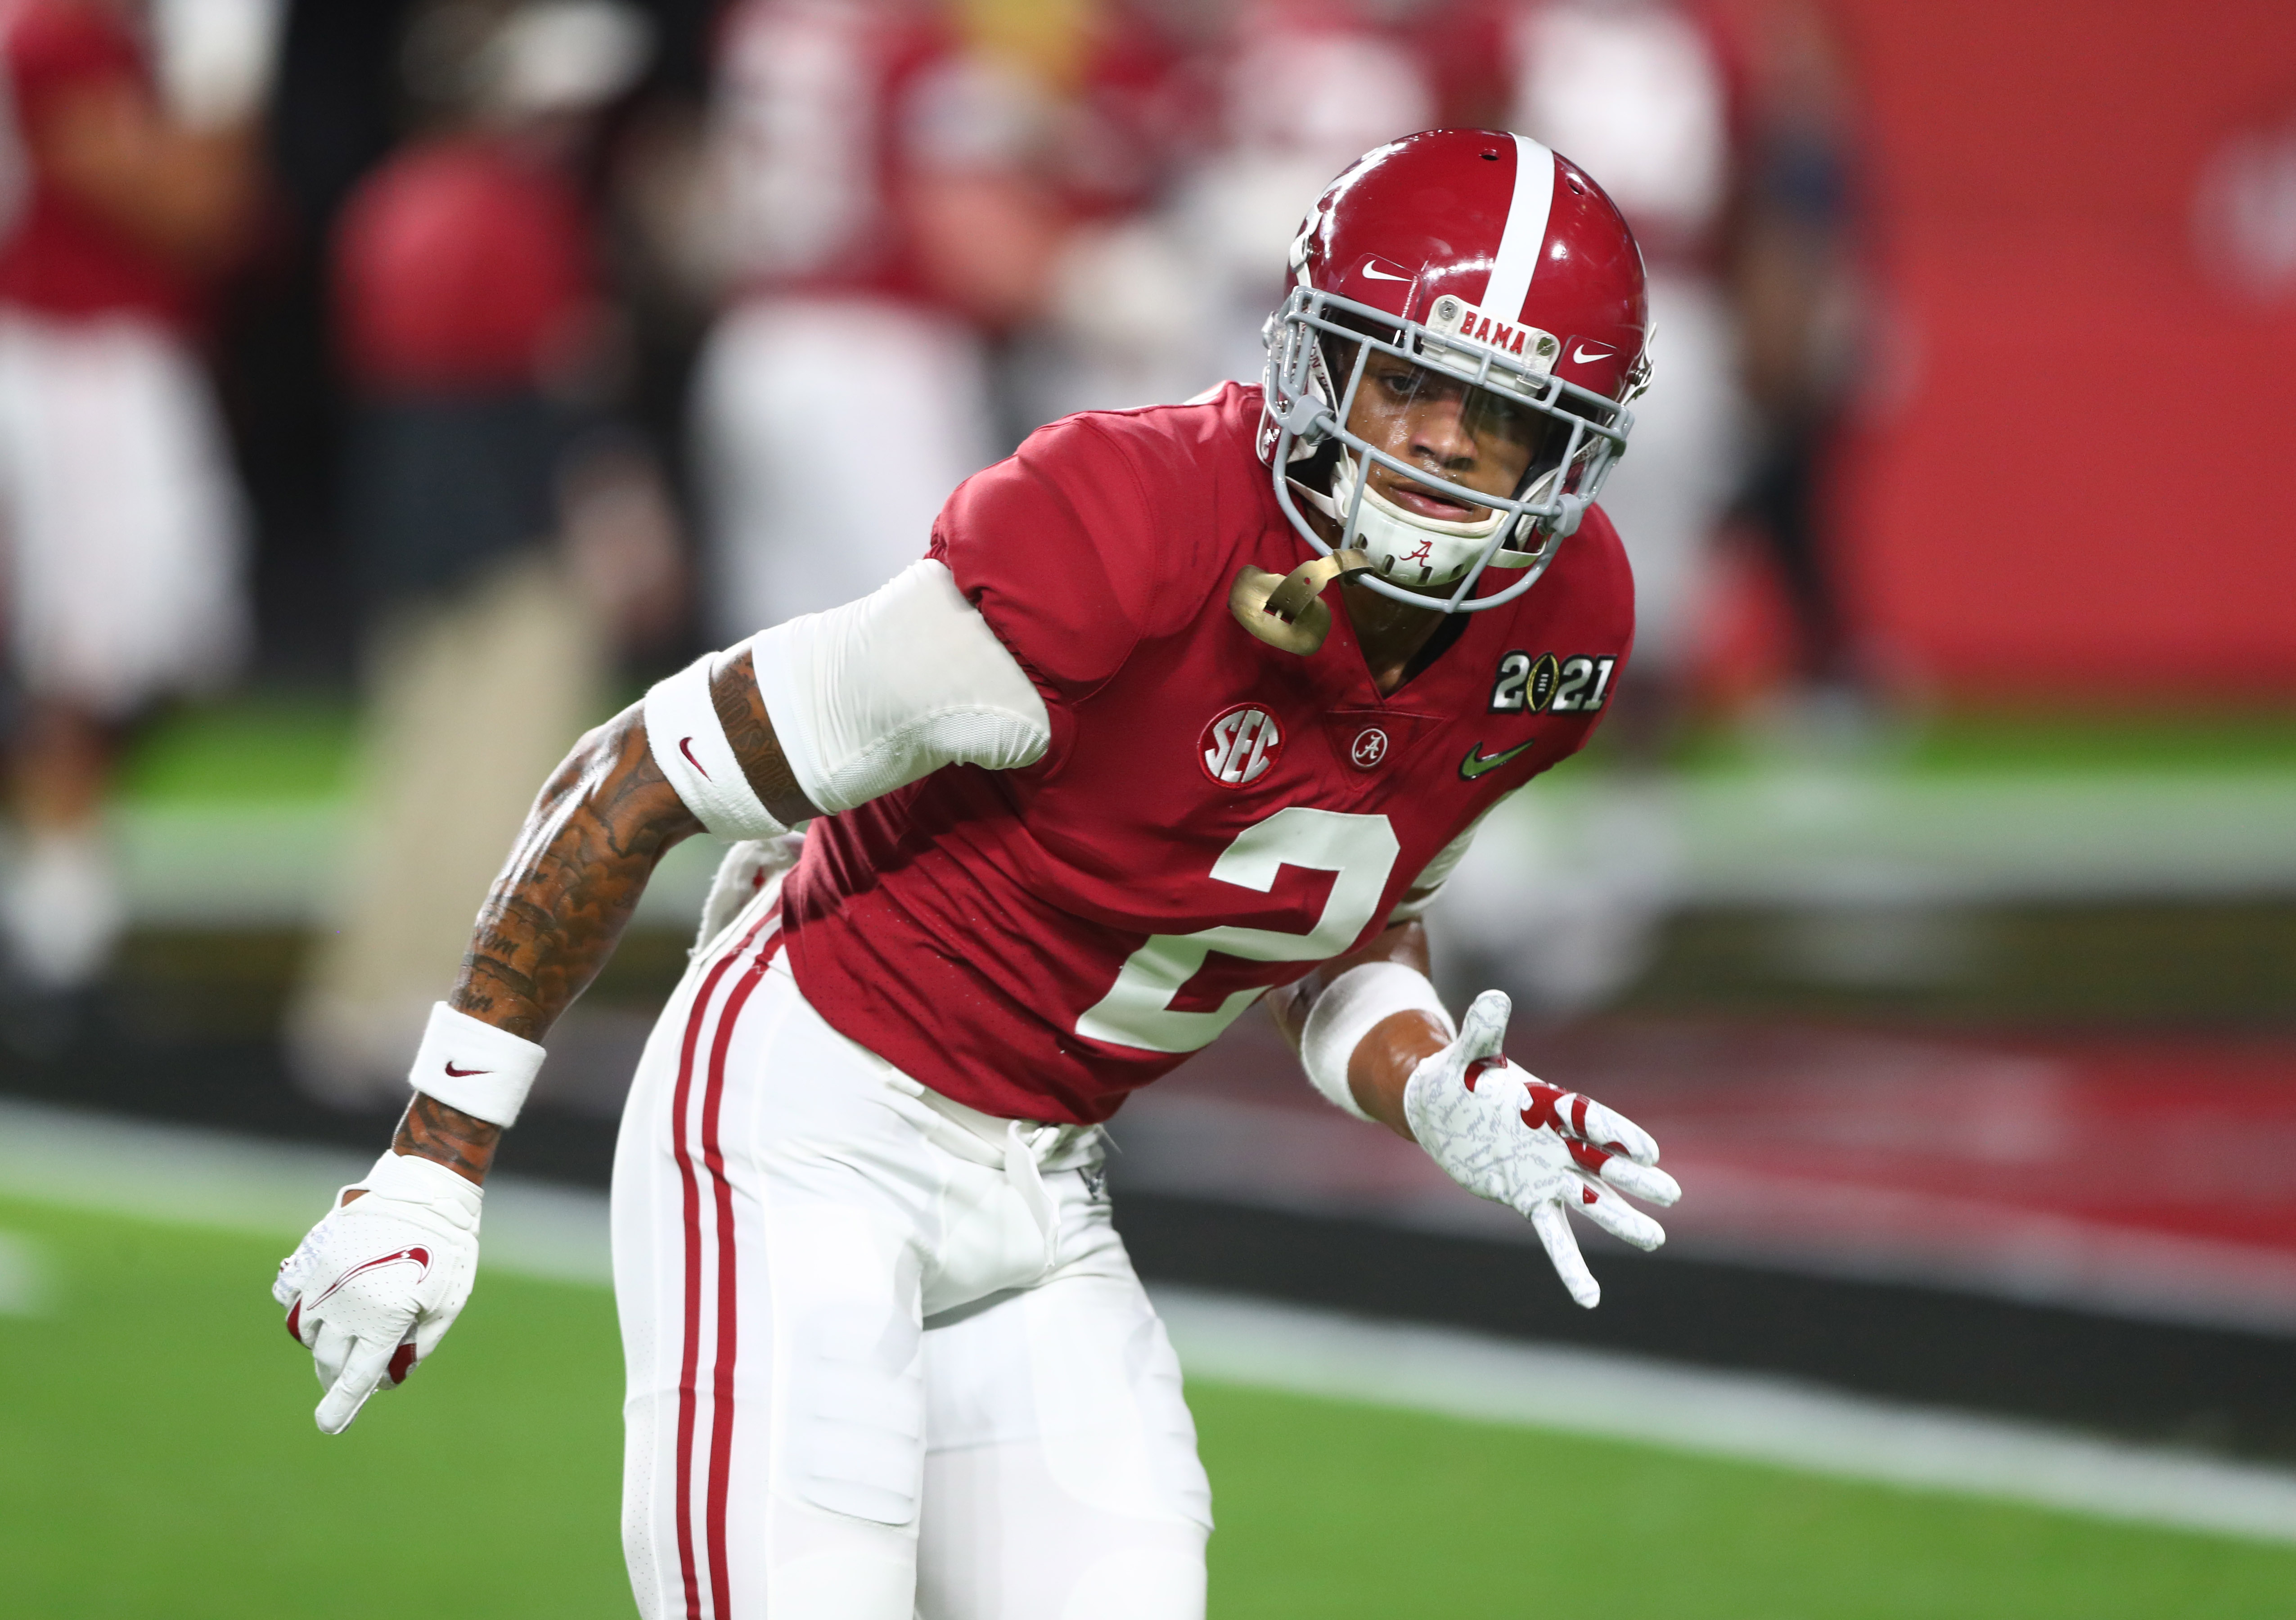 Alabama Crimson Tide defensive back Patrick Surtain II against the Ohio State Buckeyes in the 2021 College Football Playoff National Championship Game.